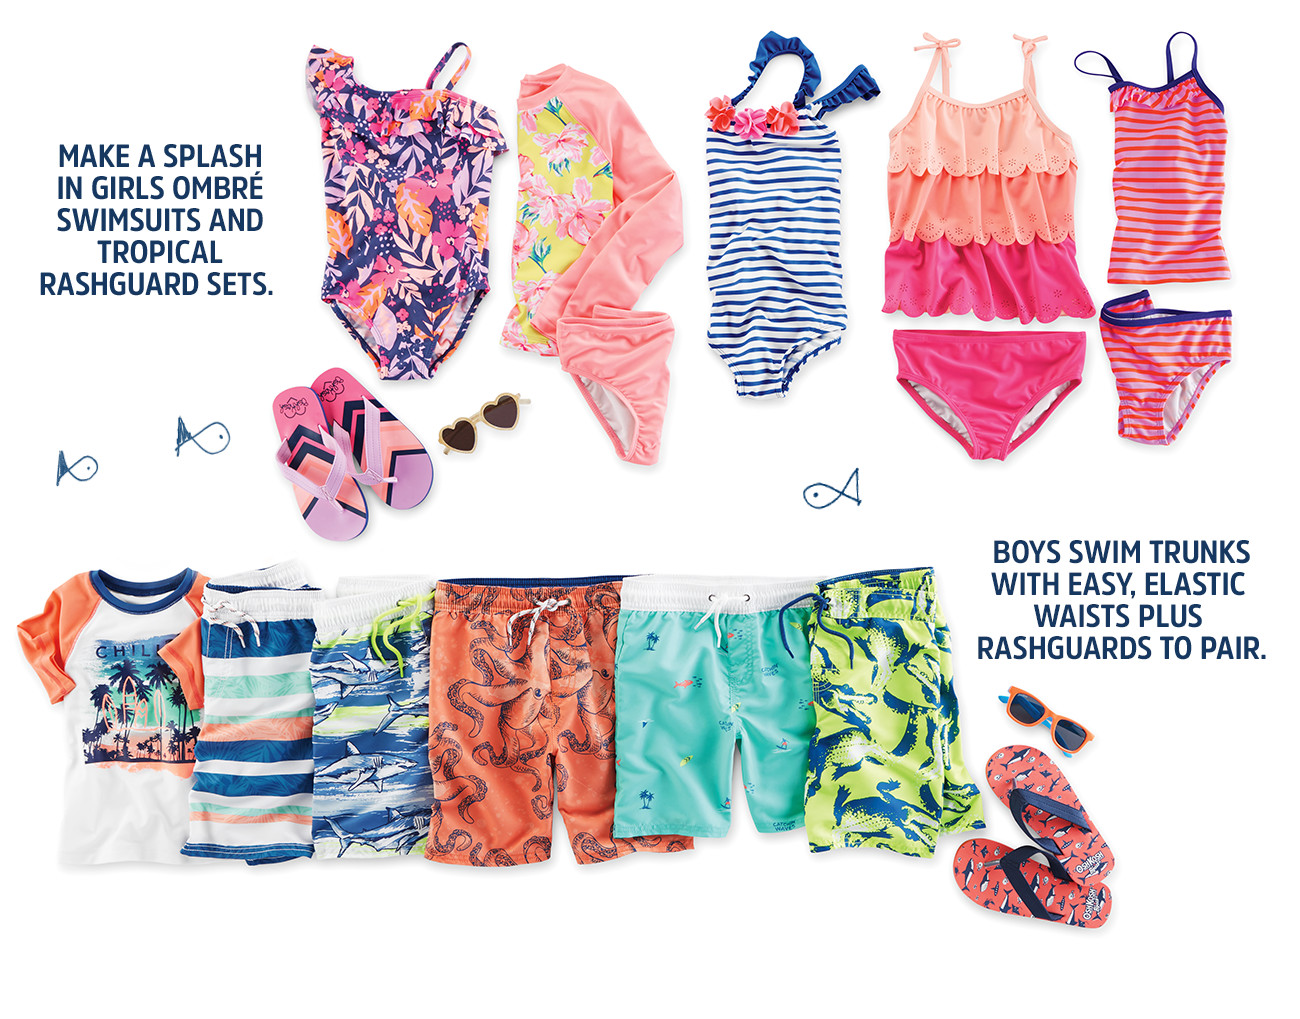 8cff5f1f5e make a splash in girls ombre swimsuits and tropical rashguard sets. | Boys  swim trunks